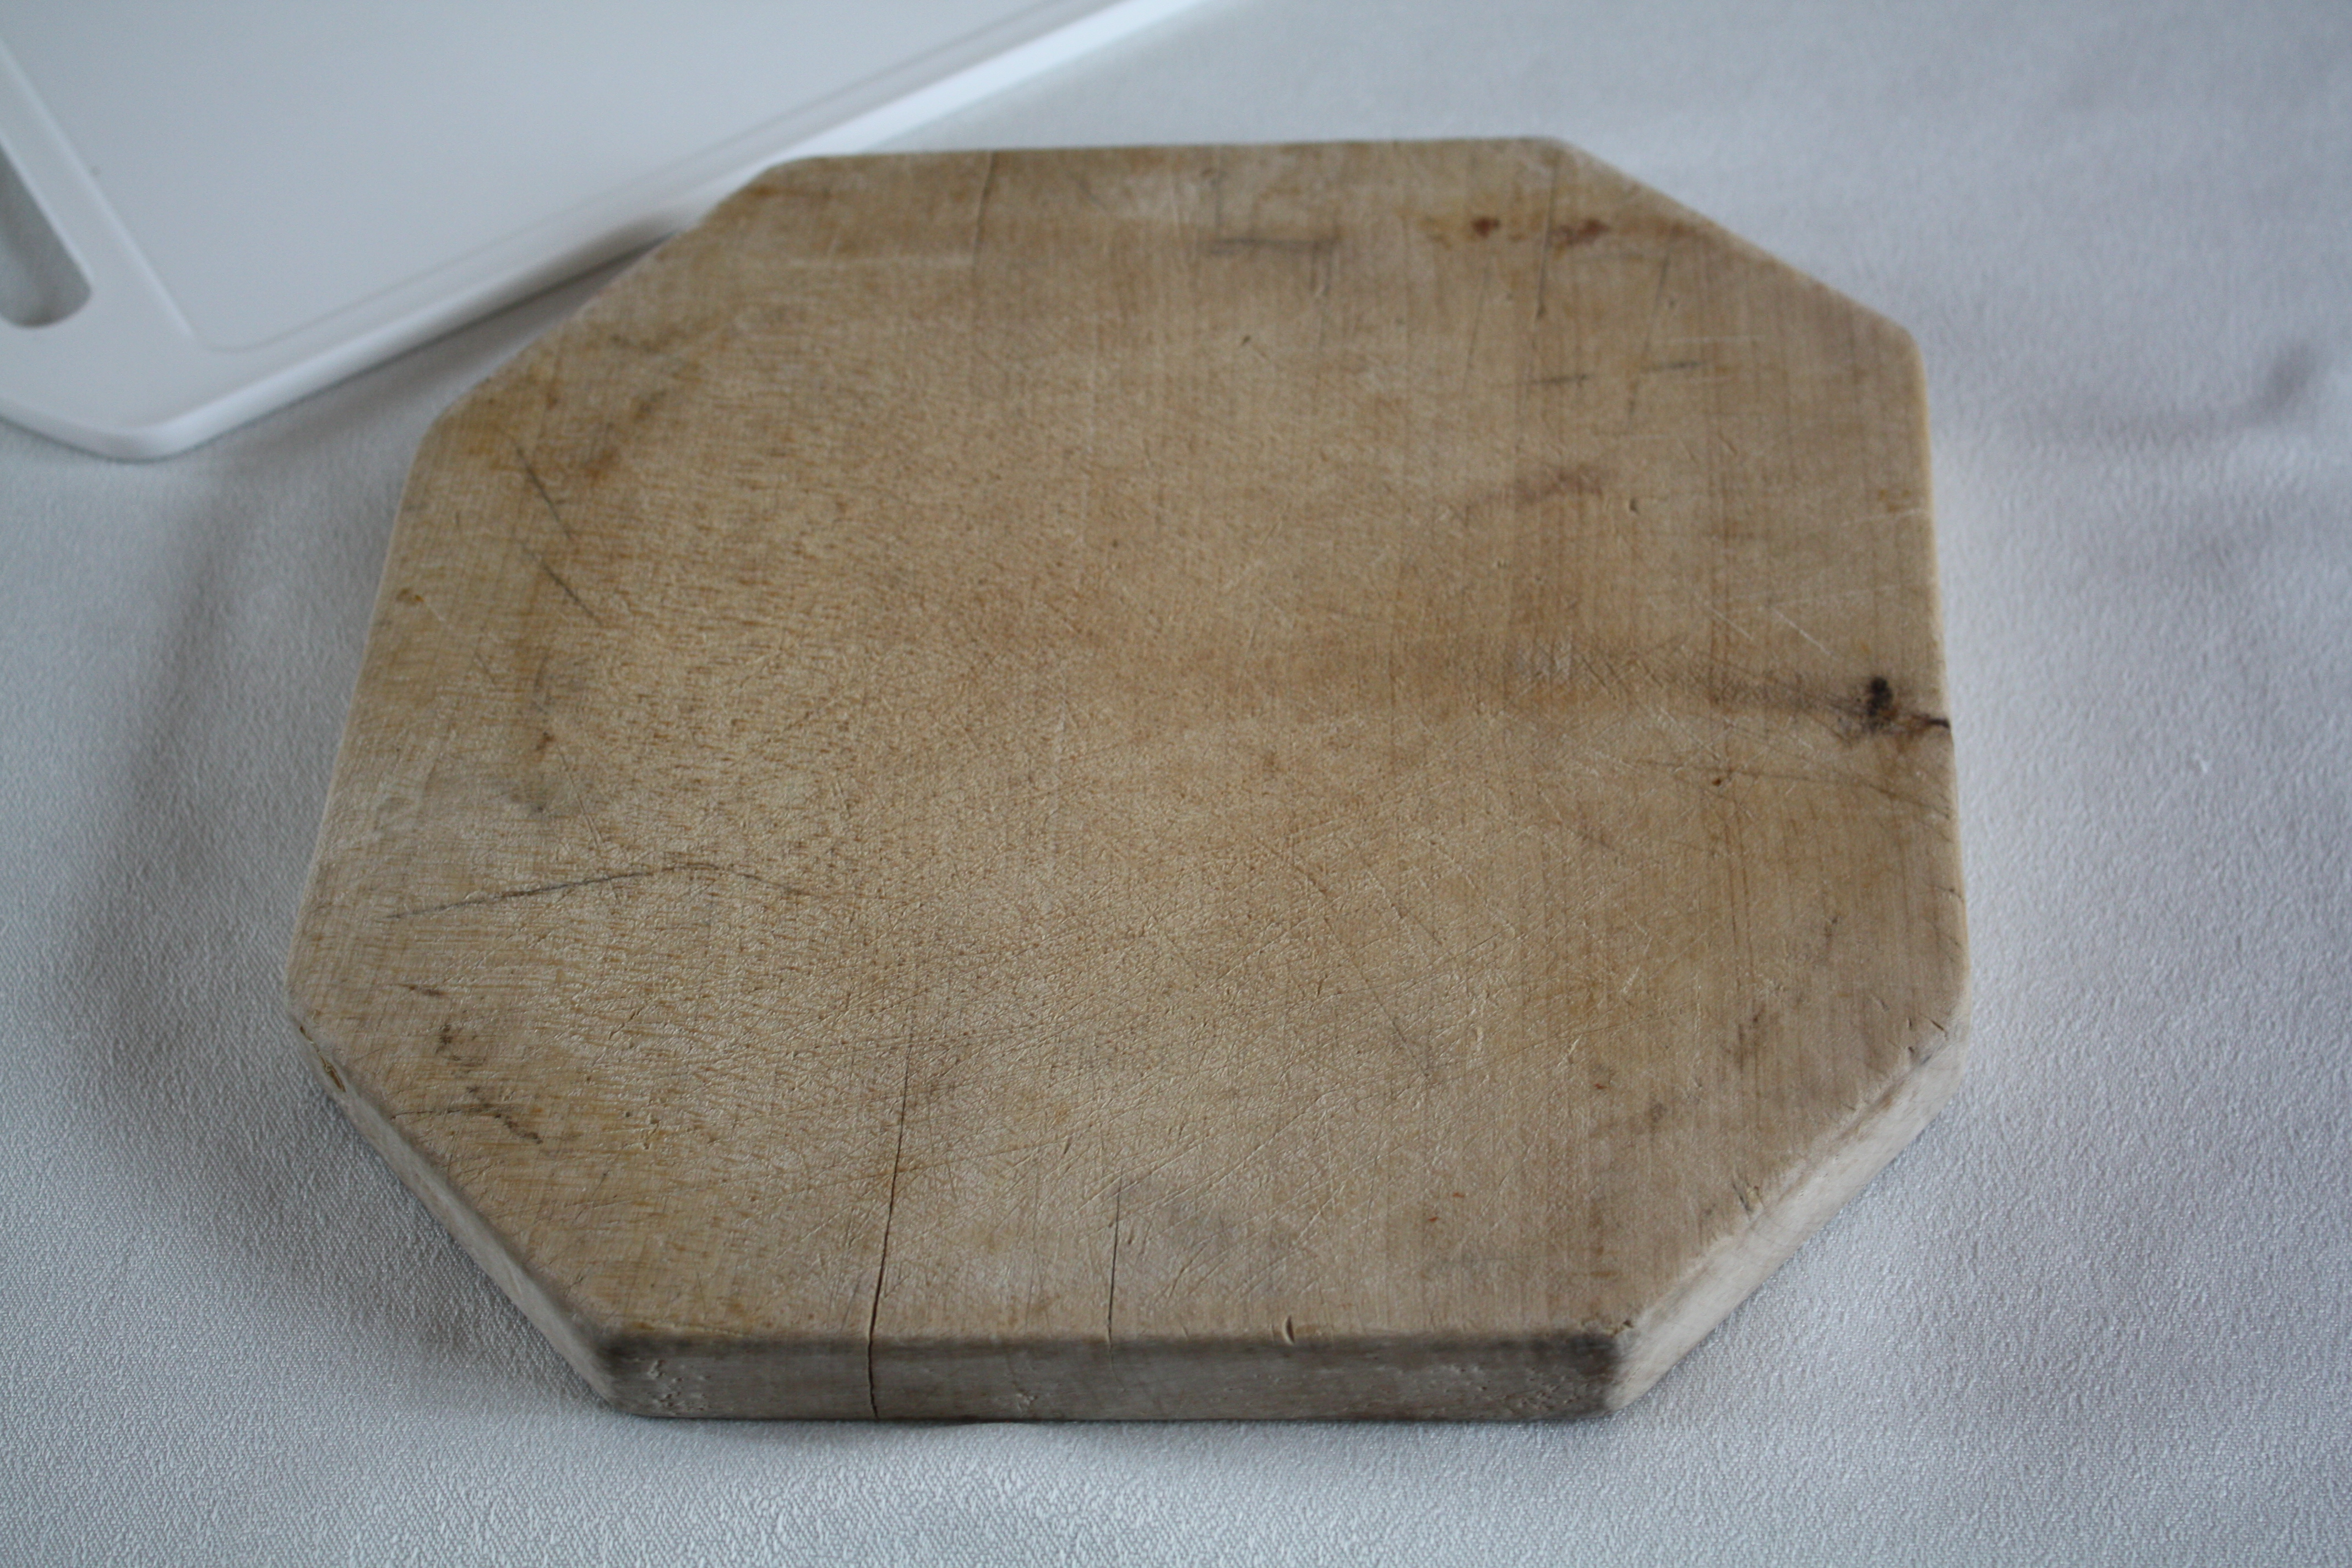 A chopping board or cutting board, is a kitchen utensil used as a flat surface on which to cut or slice things. Cutting boards are often made of wood or plastic. Care needs to be taken in cleaning them as bacteria can grow in grooves produced by cutting, or in liquids left on the board. For this rea...